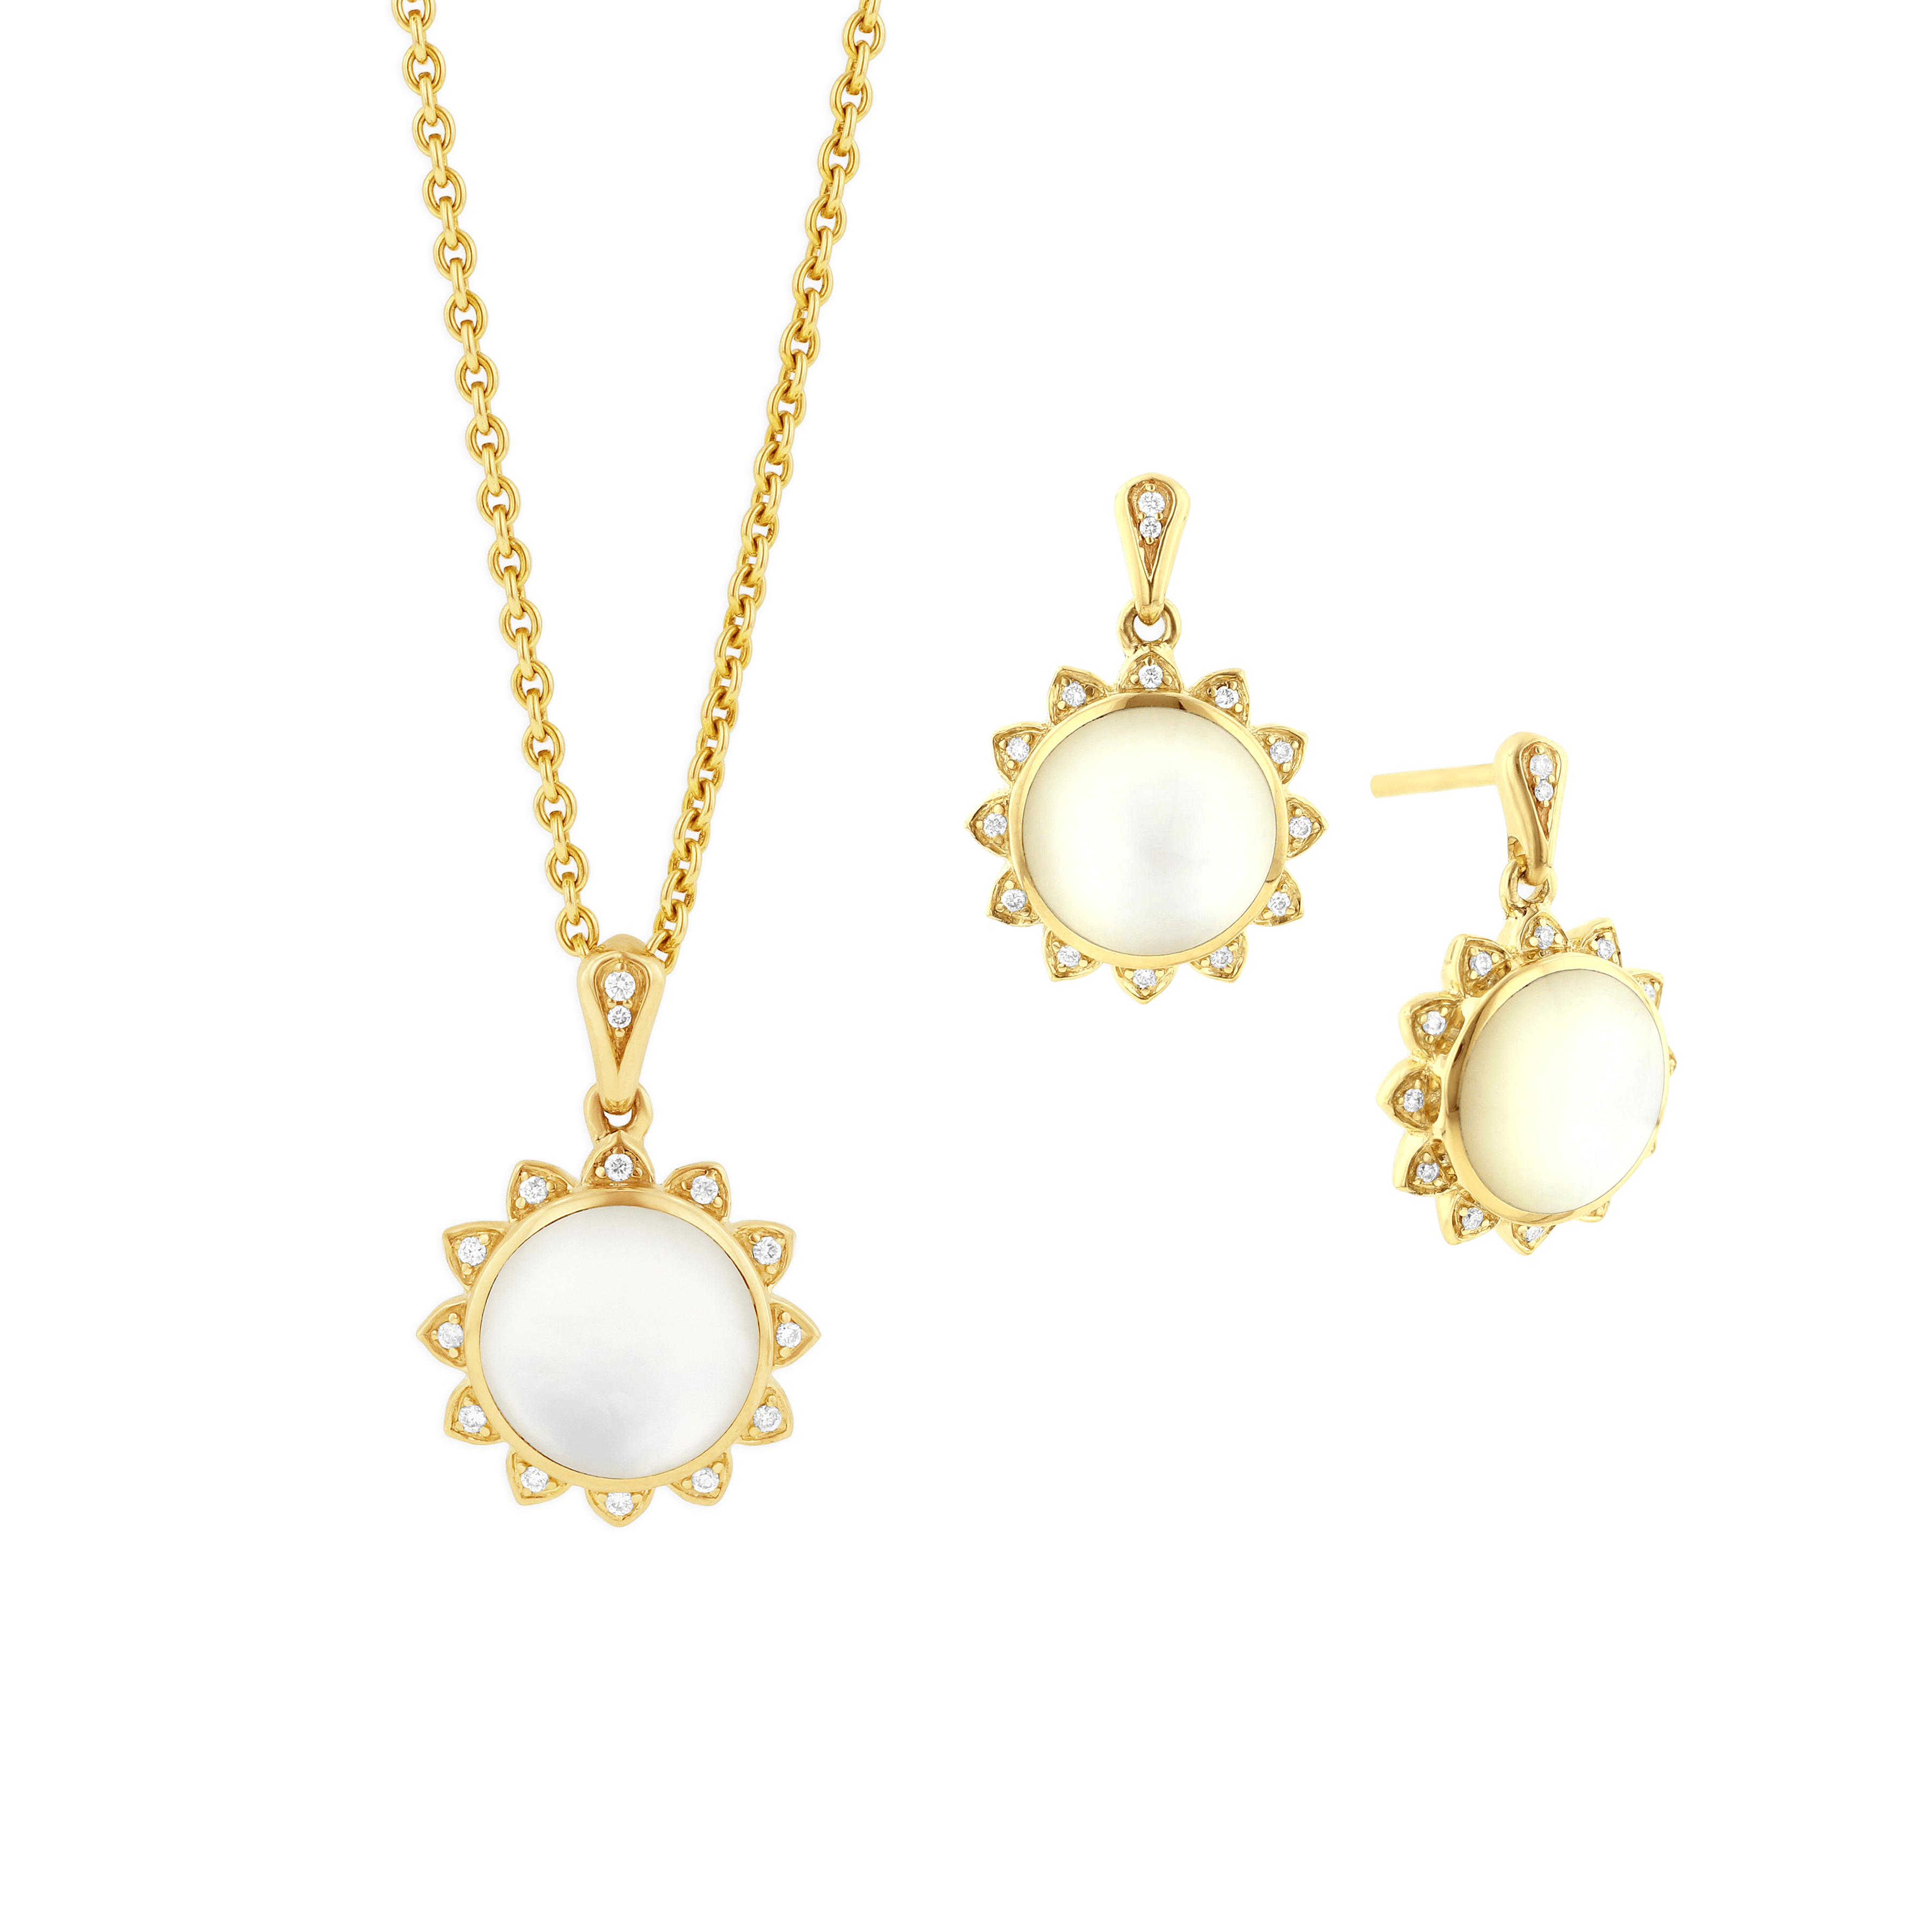 14kt yellow gold sun pendant and earrings with white mother of pearl